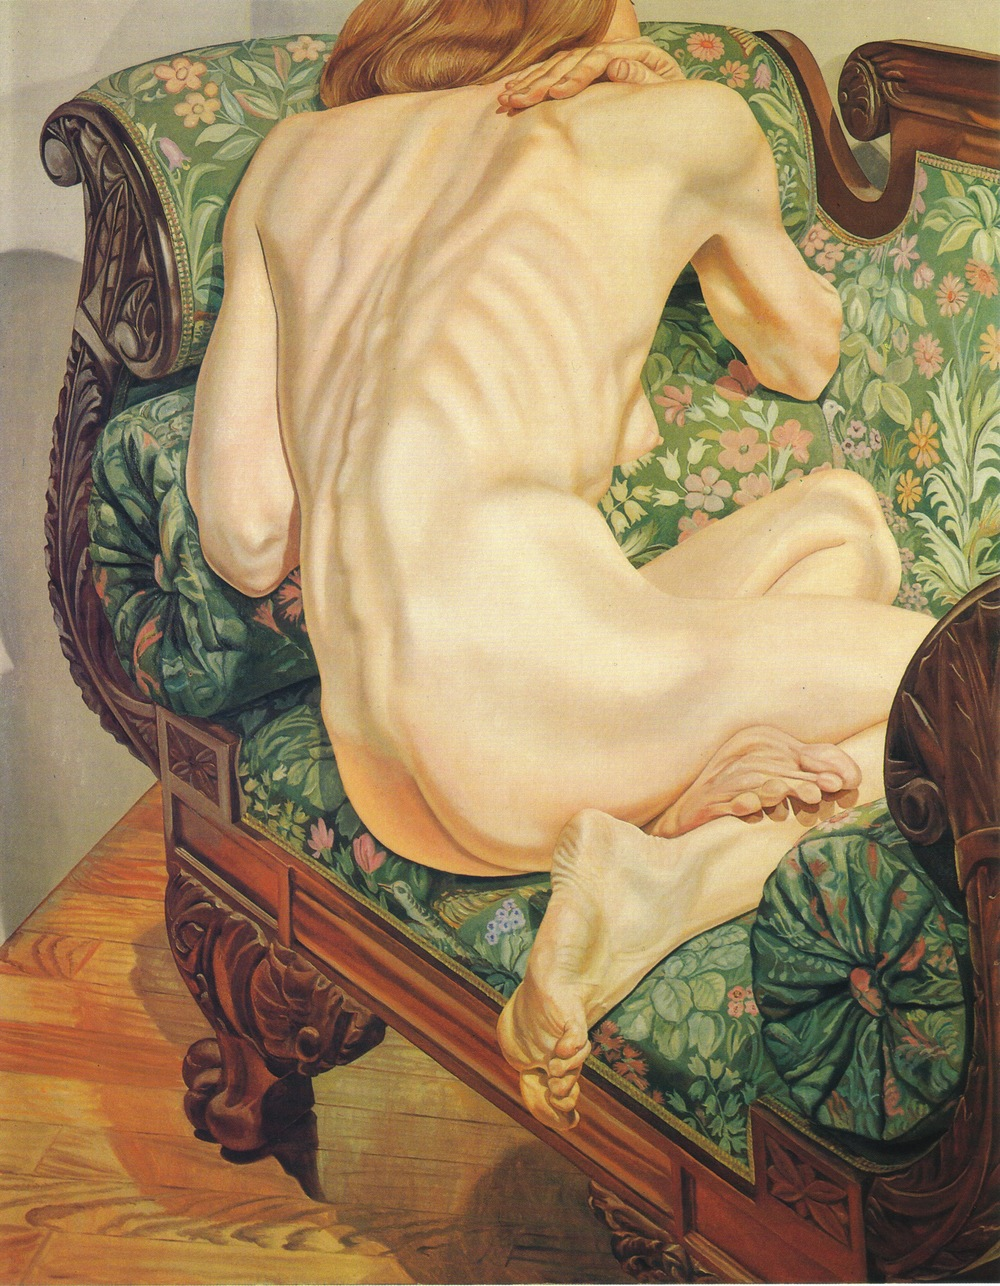 Female Model on Brocade Sofa , 1975 Oil on canvas 60 x 48 in